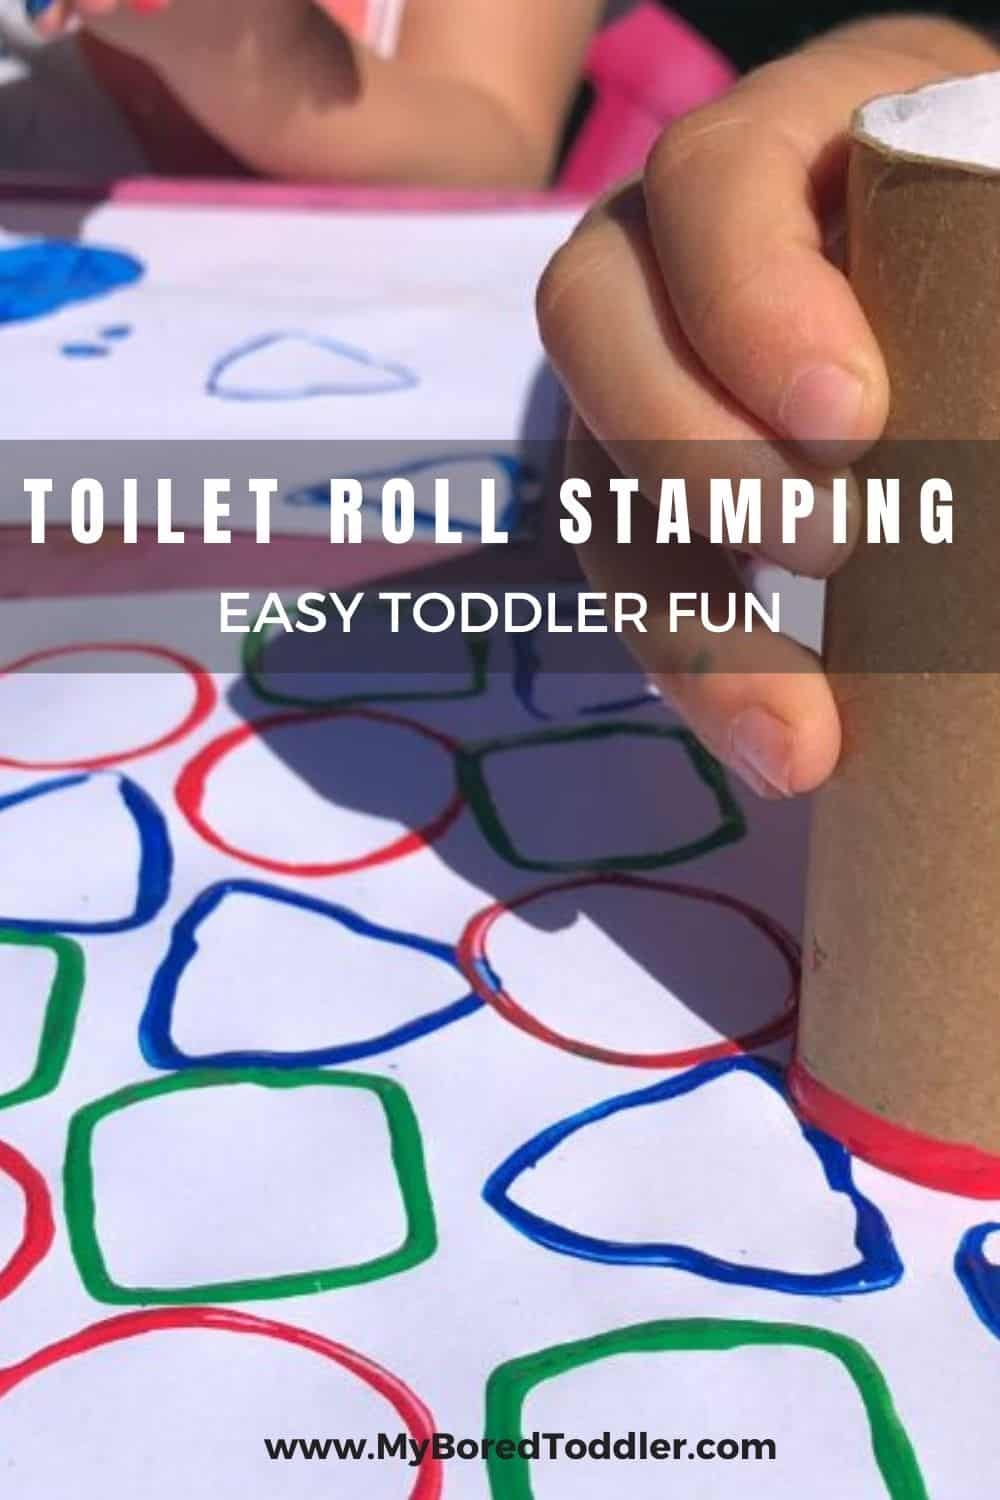 TOILET ROLL STAMPING EASY TODDLER FUN PINTEREST 2